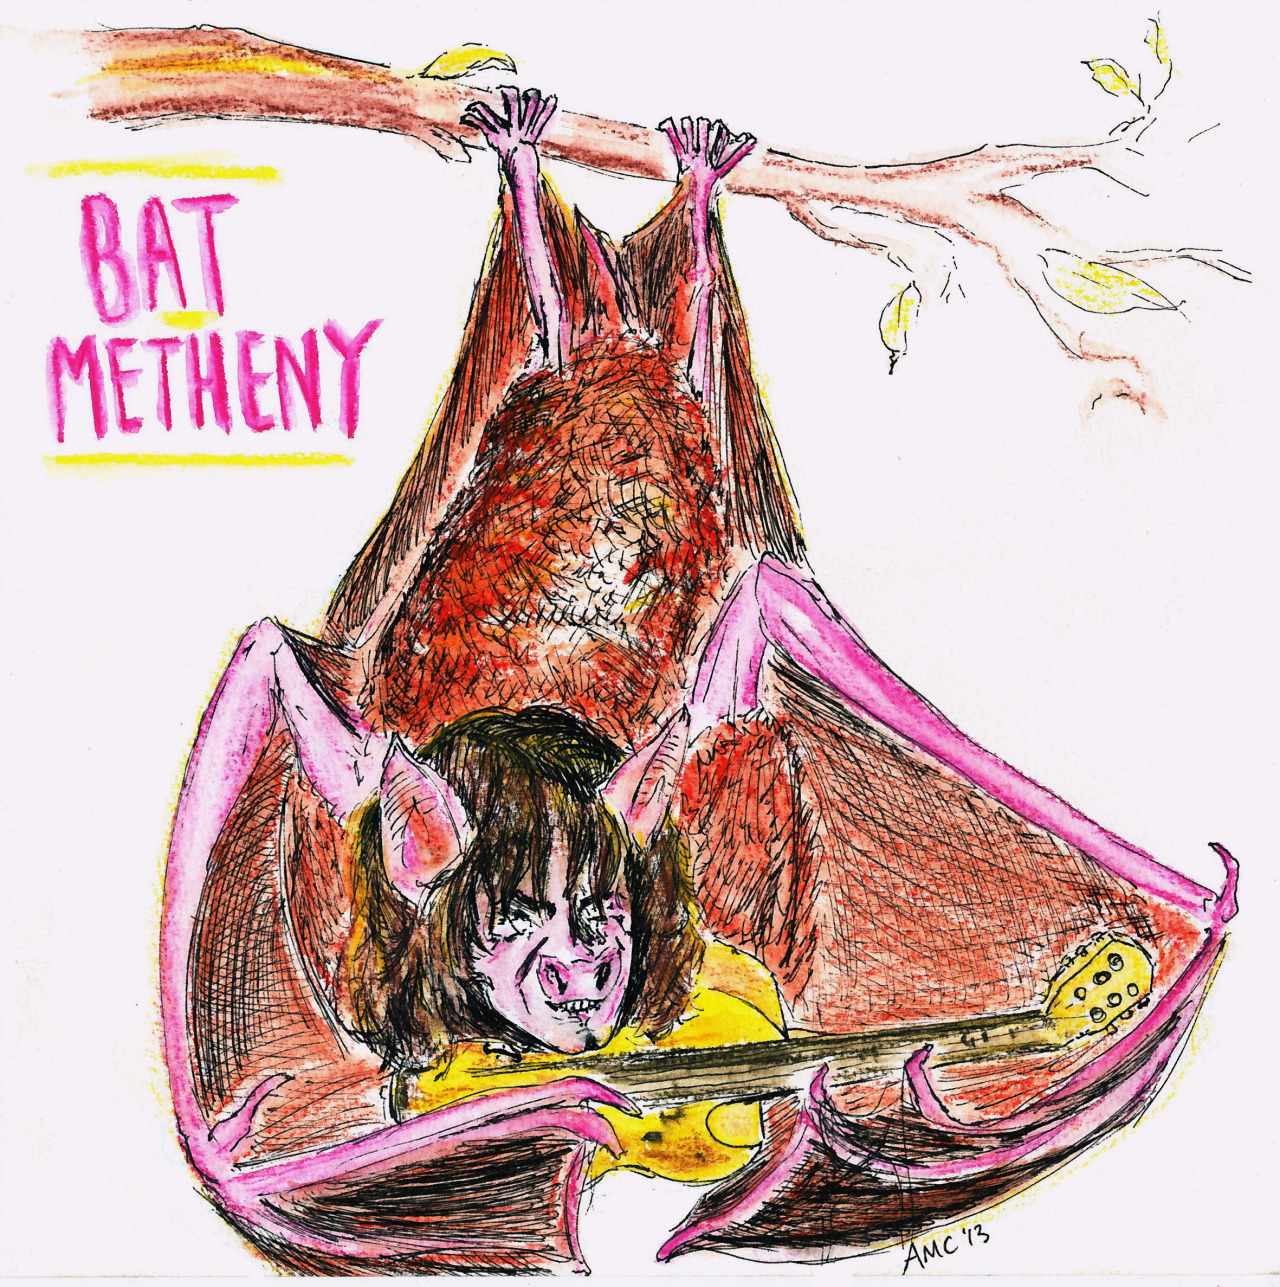 BAT METHENY (Pat Metheny on BBC's Whistle Test)